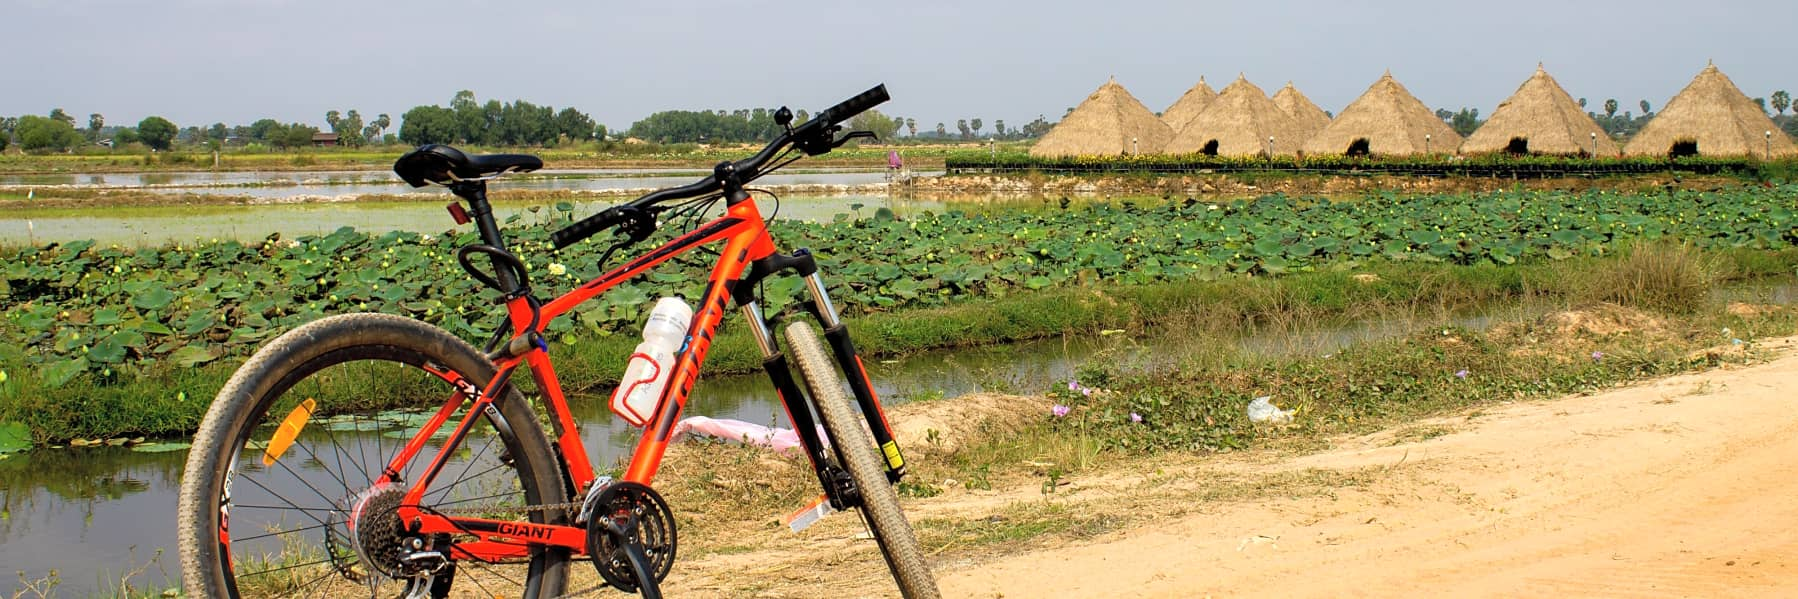 Siem Reap Countryside Bike Tour (Morning/Afternoon) – Half Day gallery